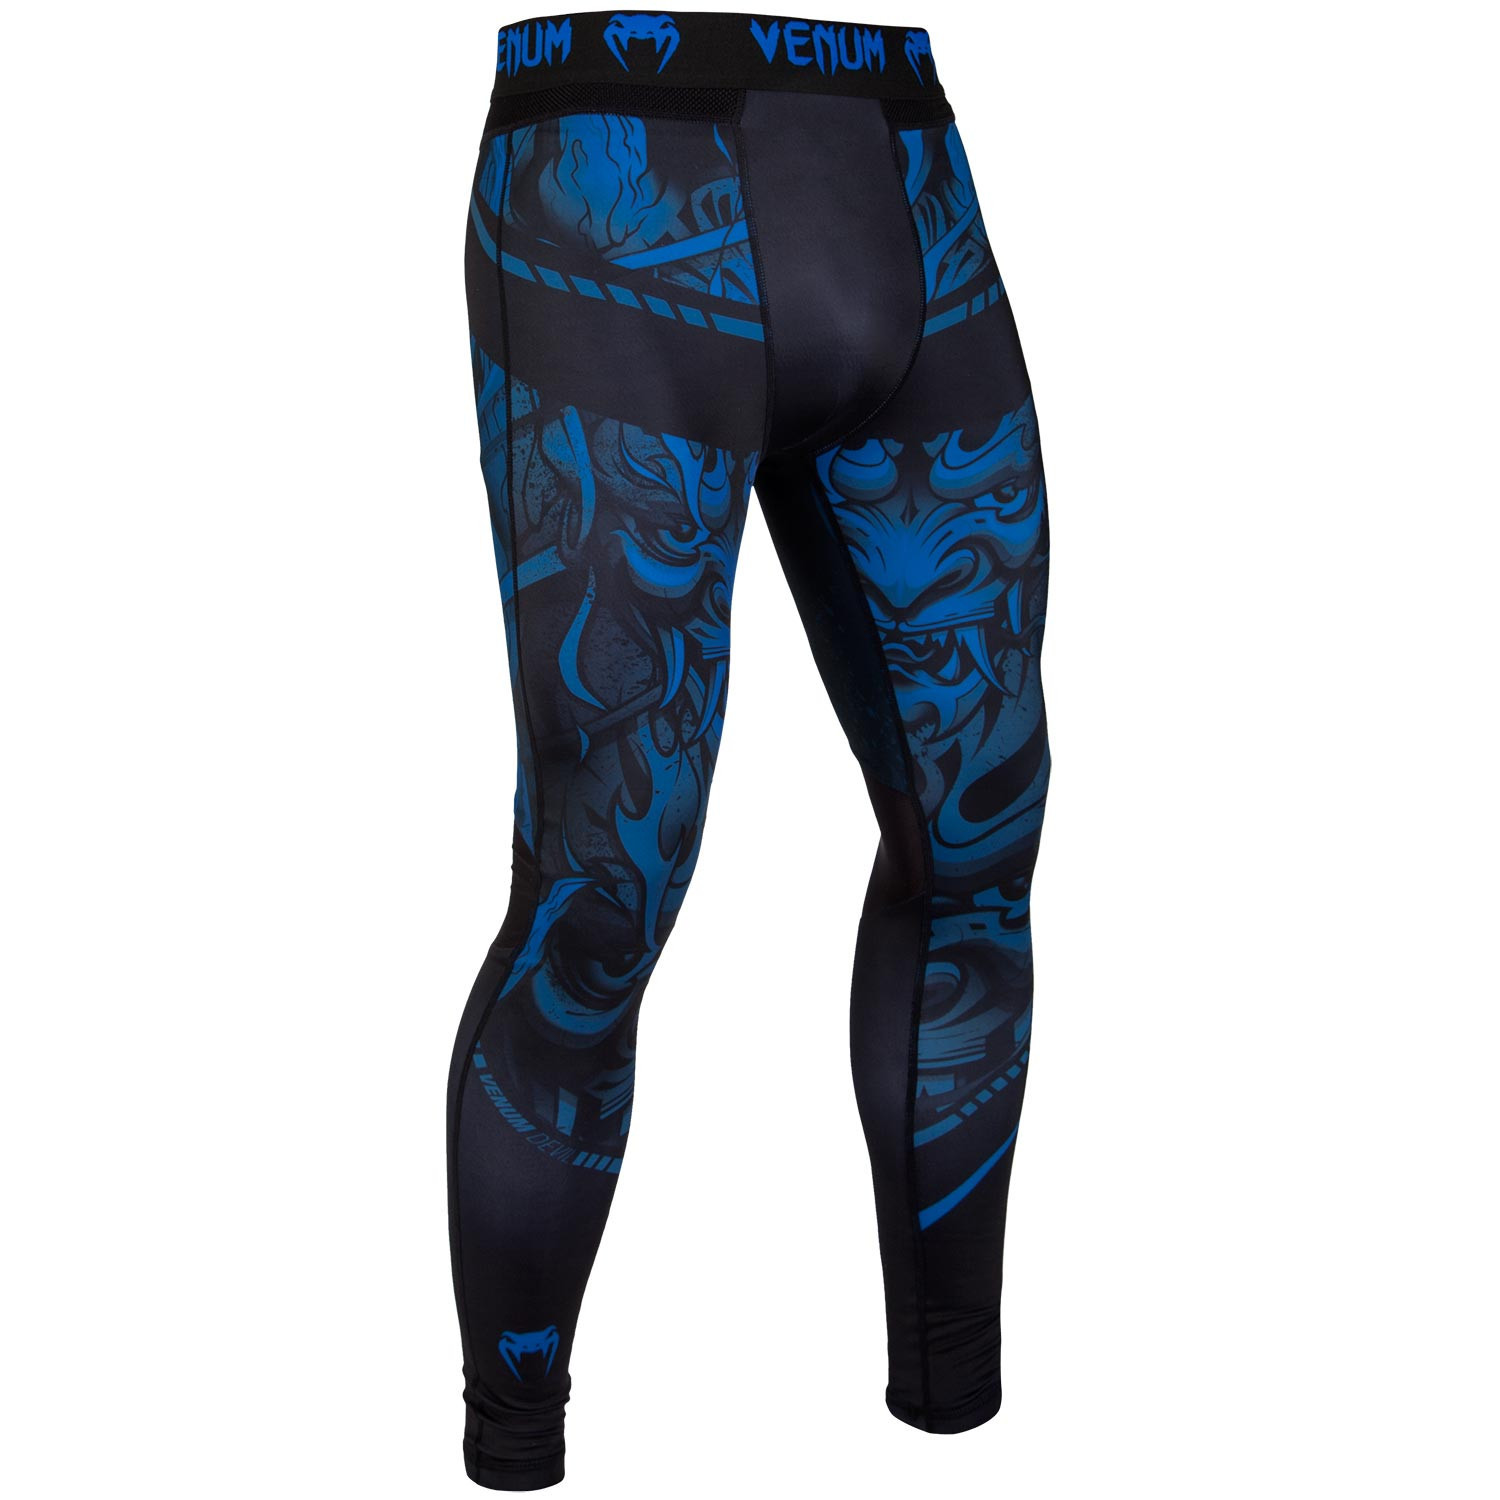 Спортивные штаны venum devil spats navy blue black